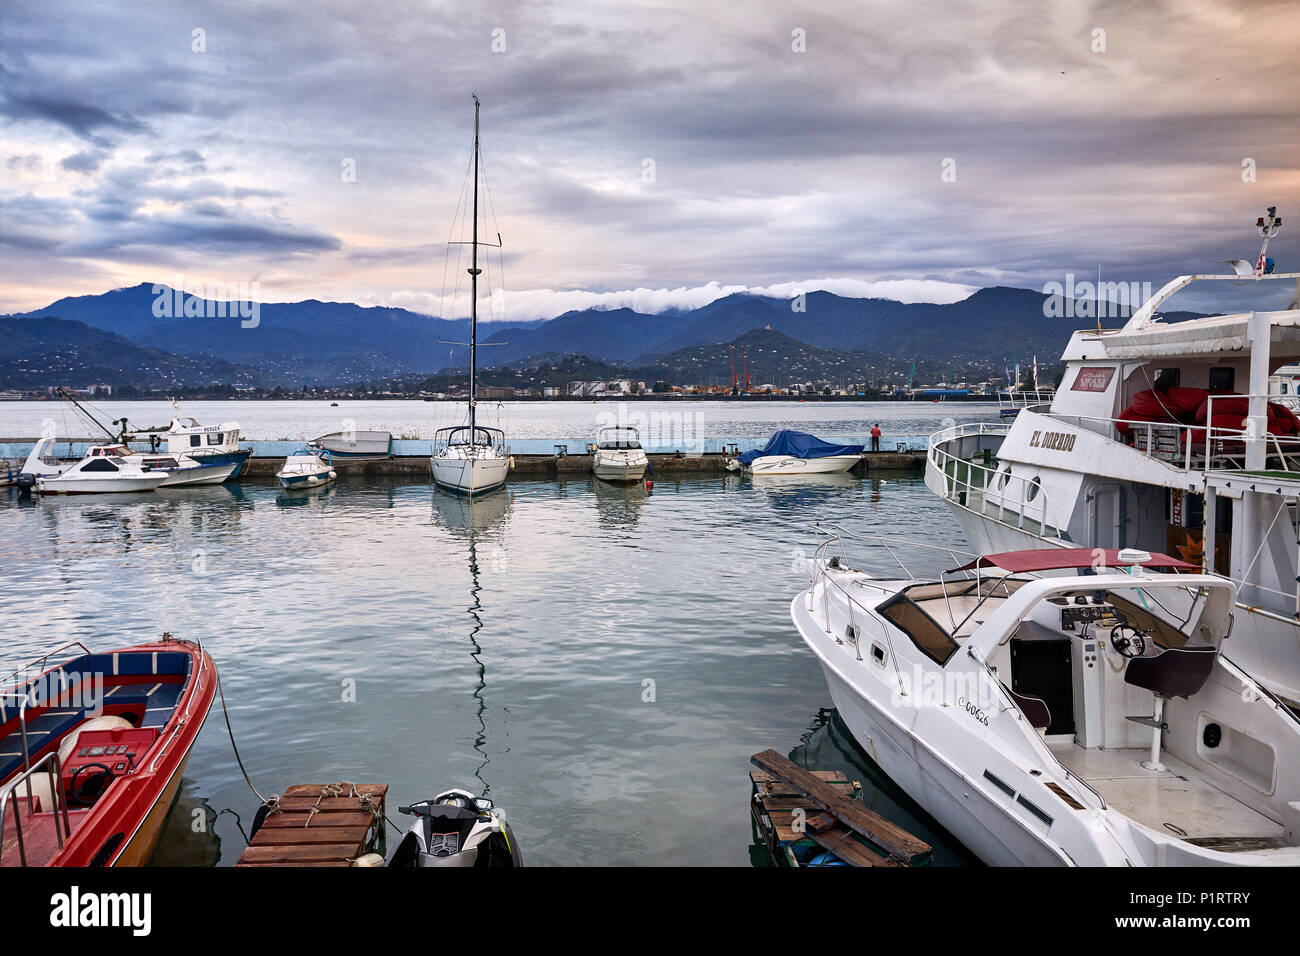 BATUMI, GEORGIA – OCTOBER 3, 2017: Sea Port with fishing boats and yacht at overcast stormy sky - Stock Image